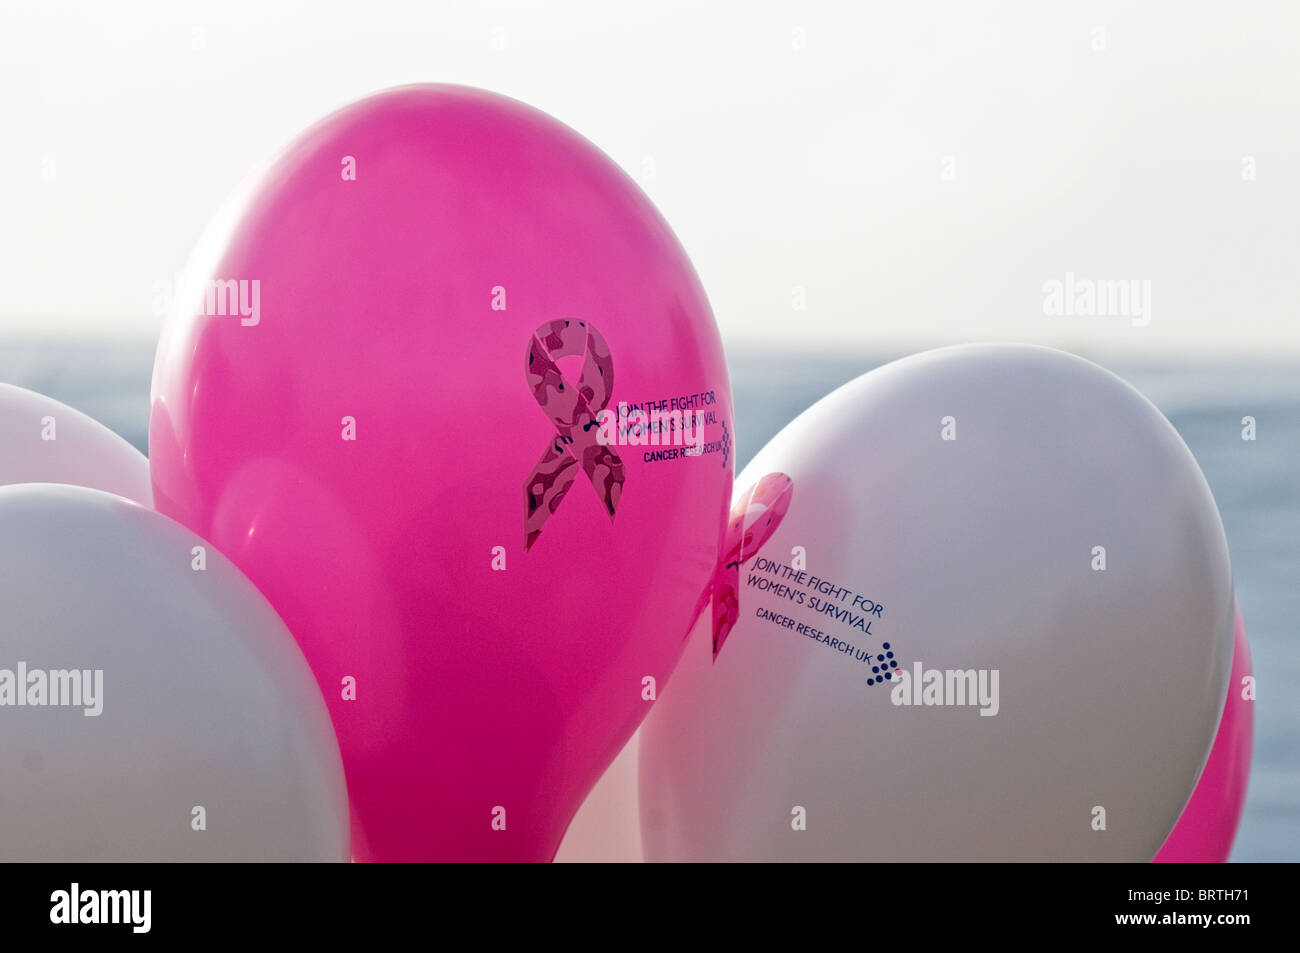 Ballons à l'aide de Thorndon Stride in Cancer Research UK. Photo Stock